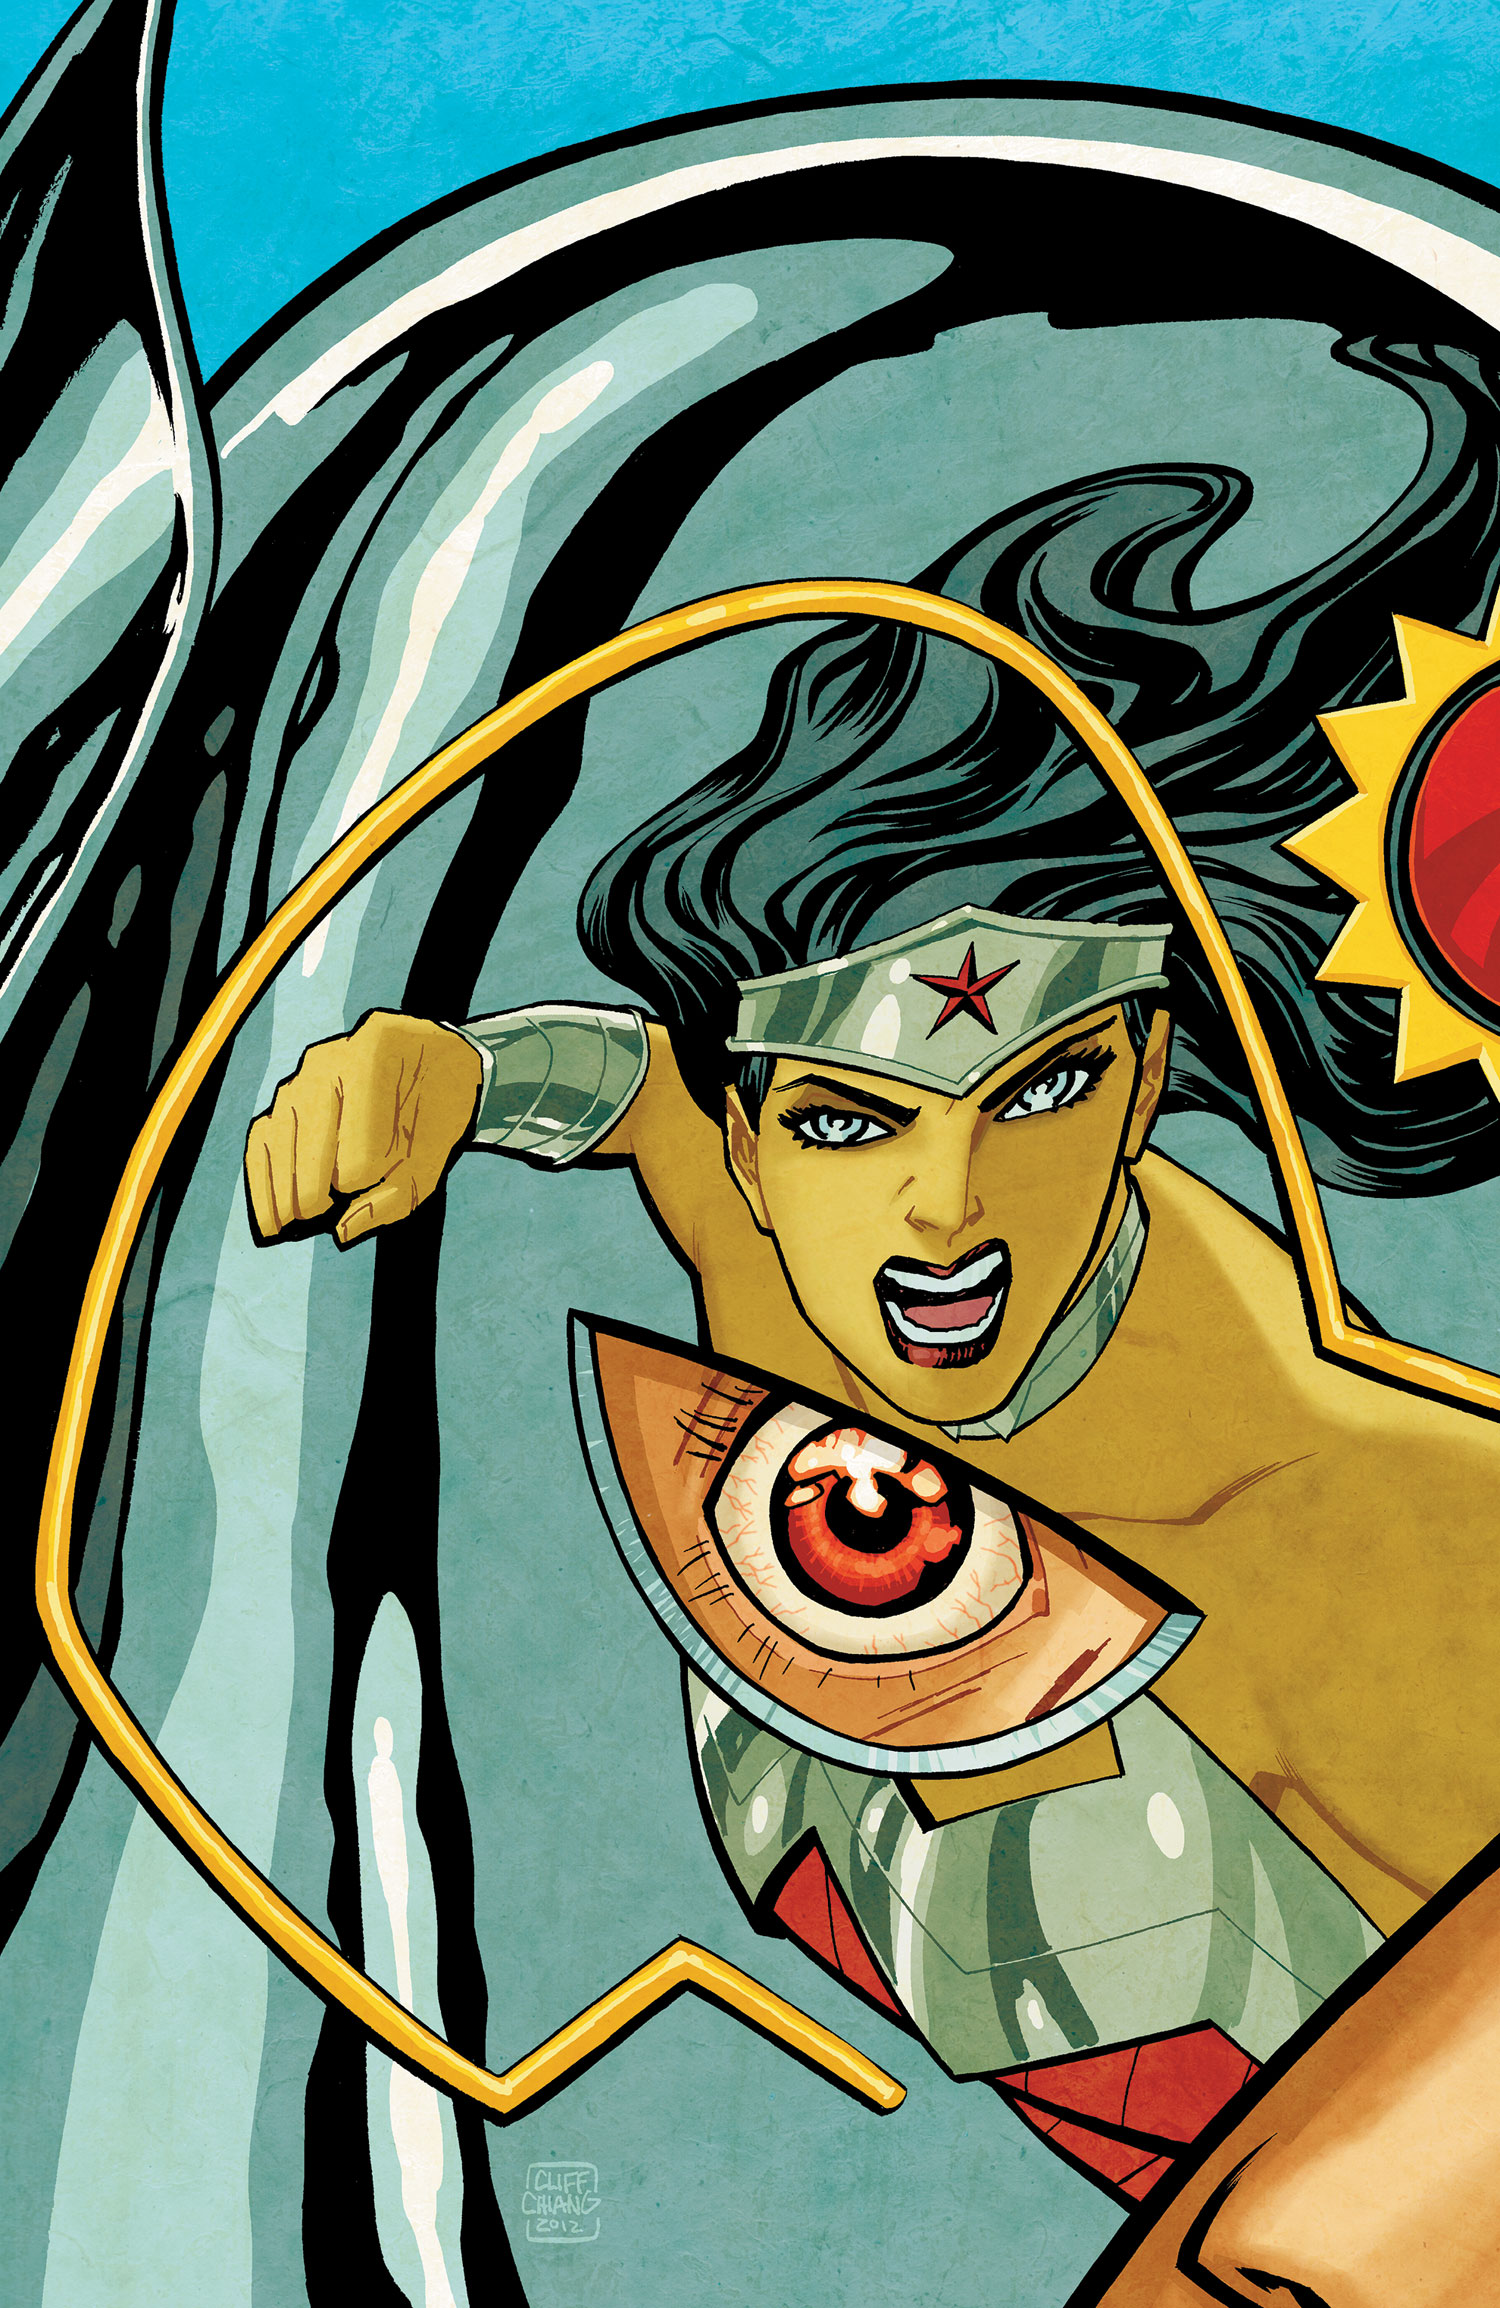 Wonder Woman #15 by Cliff Chiang